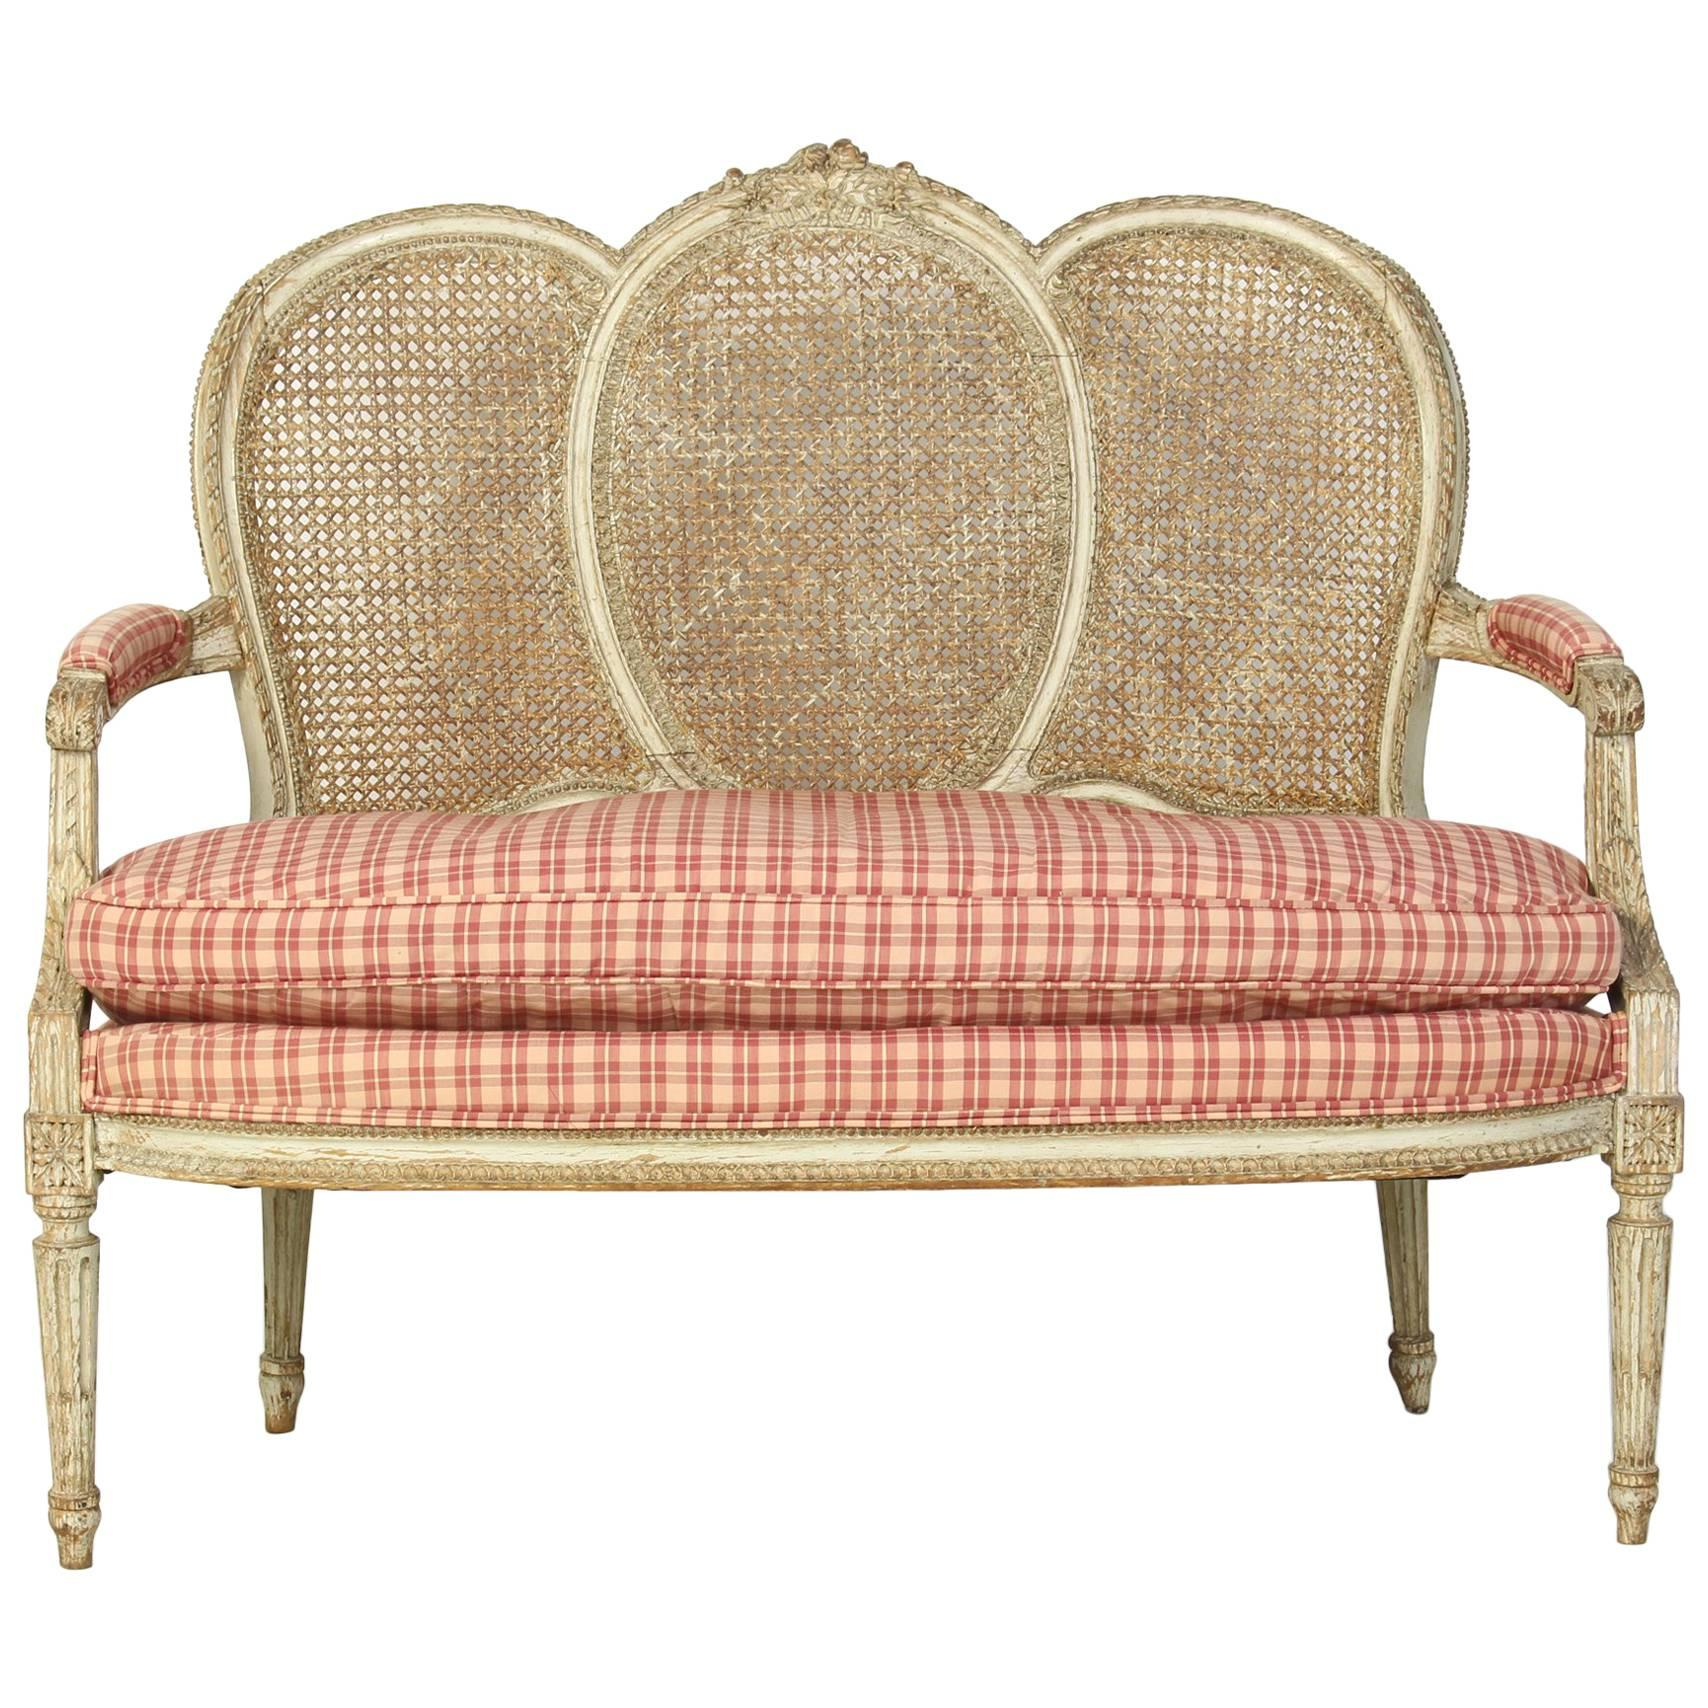 19th Century French Settee